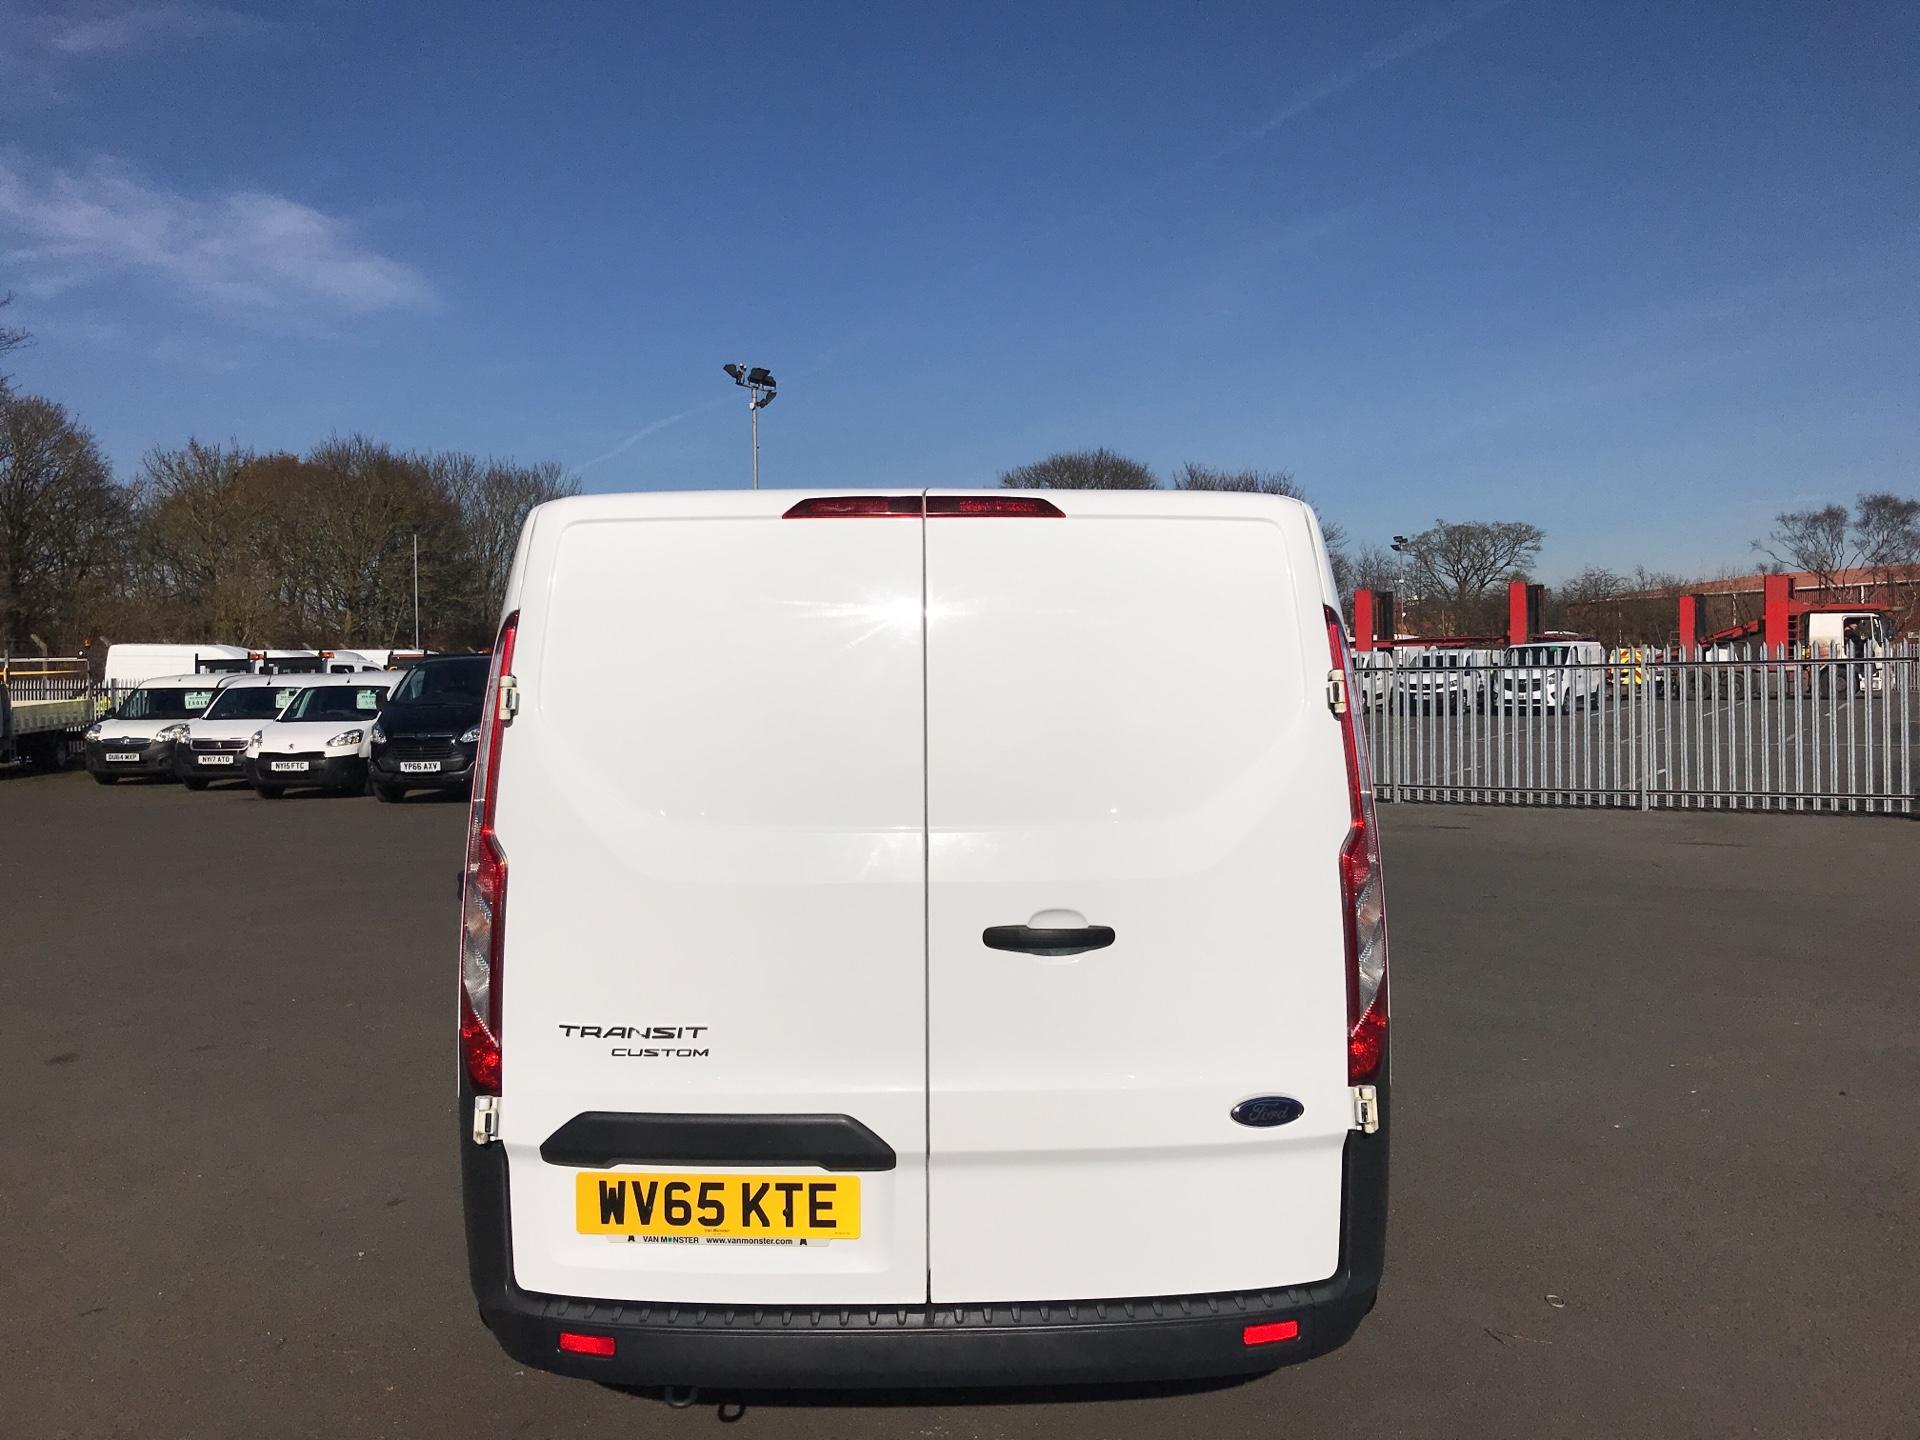 2015 Ford Transit Custom 290 L1 DIESEL FWD 2.2  TDCI 100PS LOW ROOF VAN EURO 5 (WV65KTE) Thumbnail 4